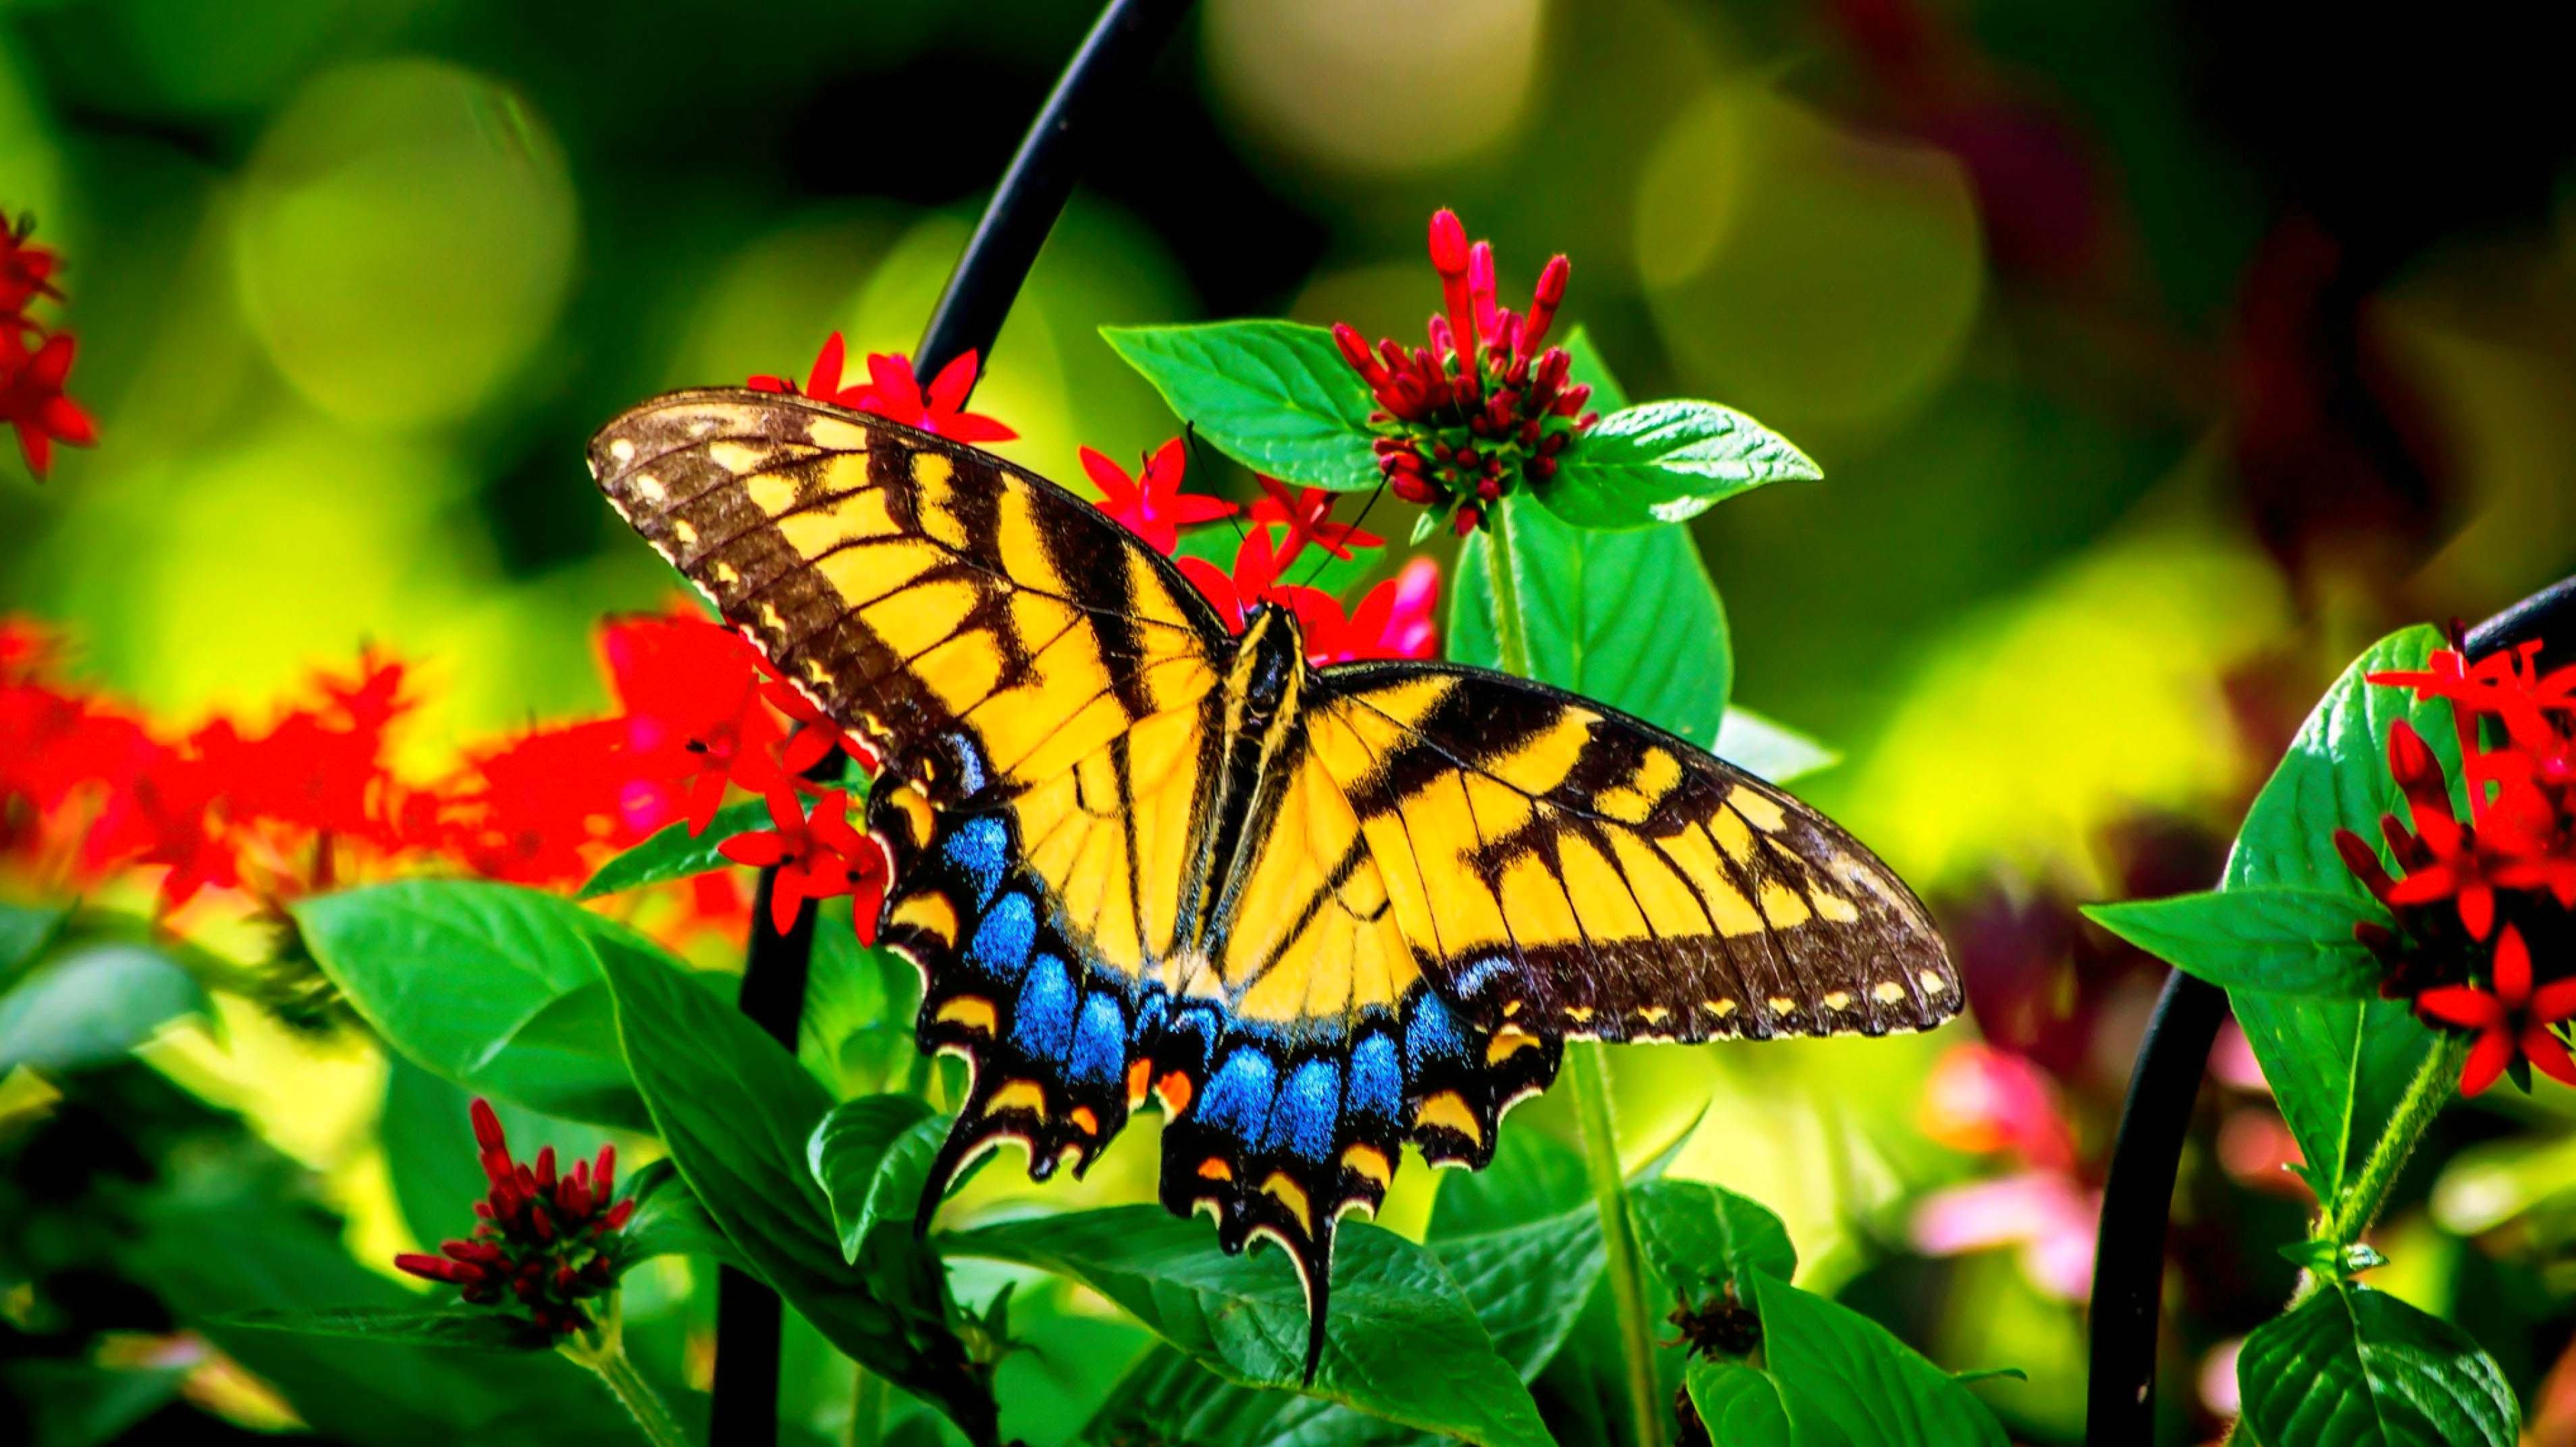 55 Colorful ButterflyHD Images Wallpapers Download 3816x2144